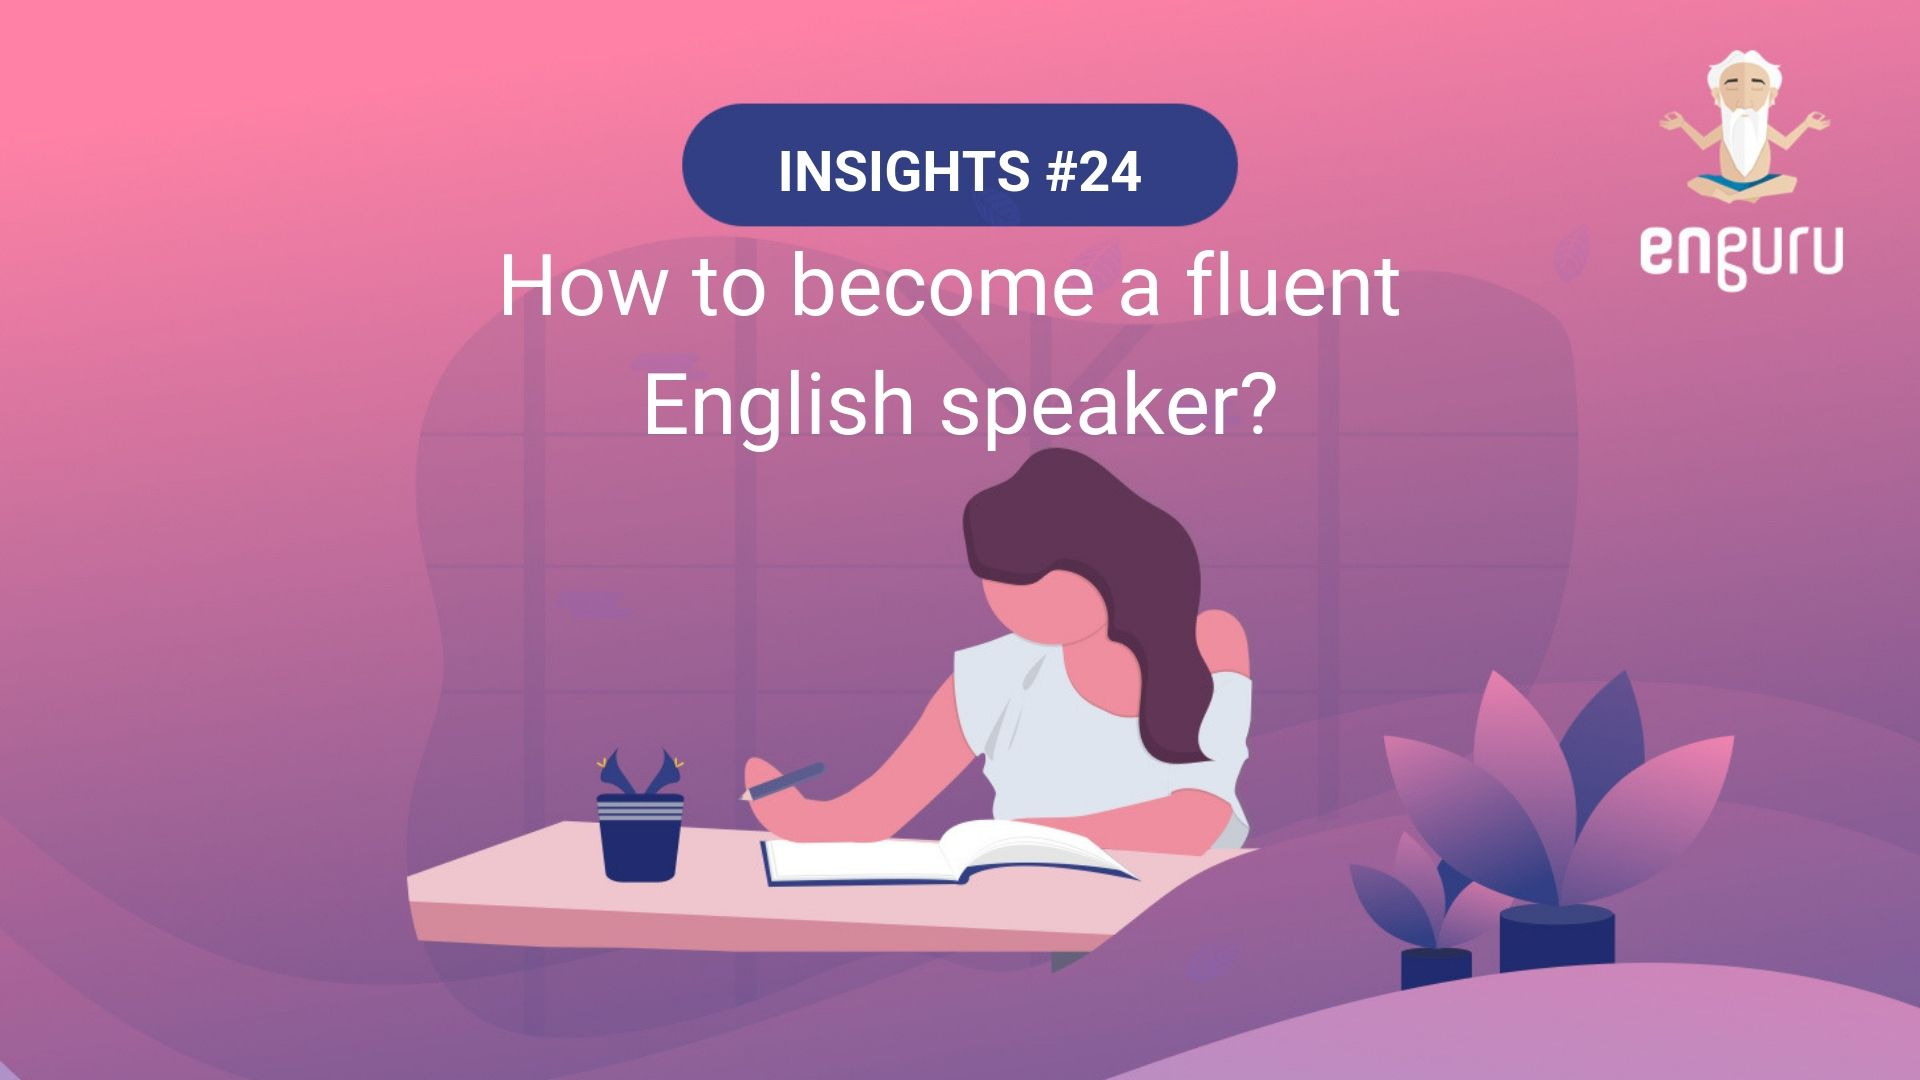 How to become a fluent English speaker?